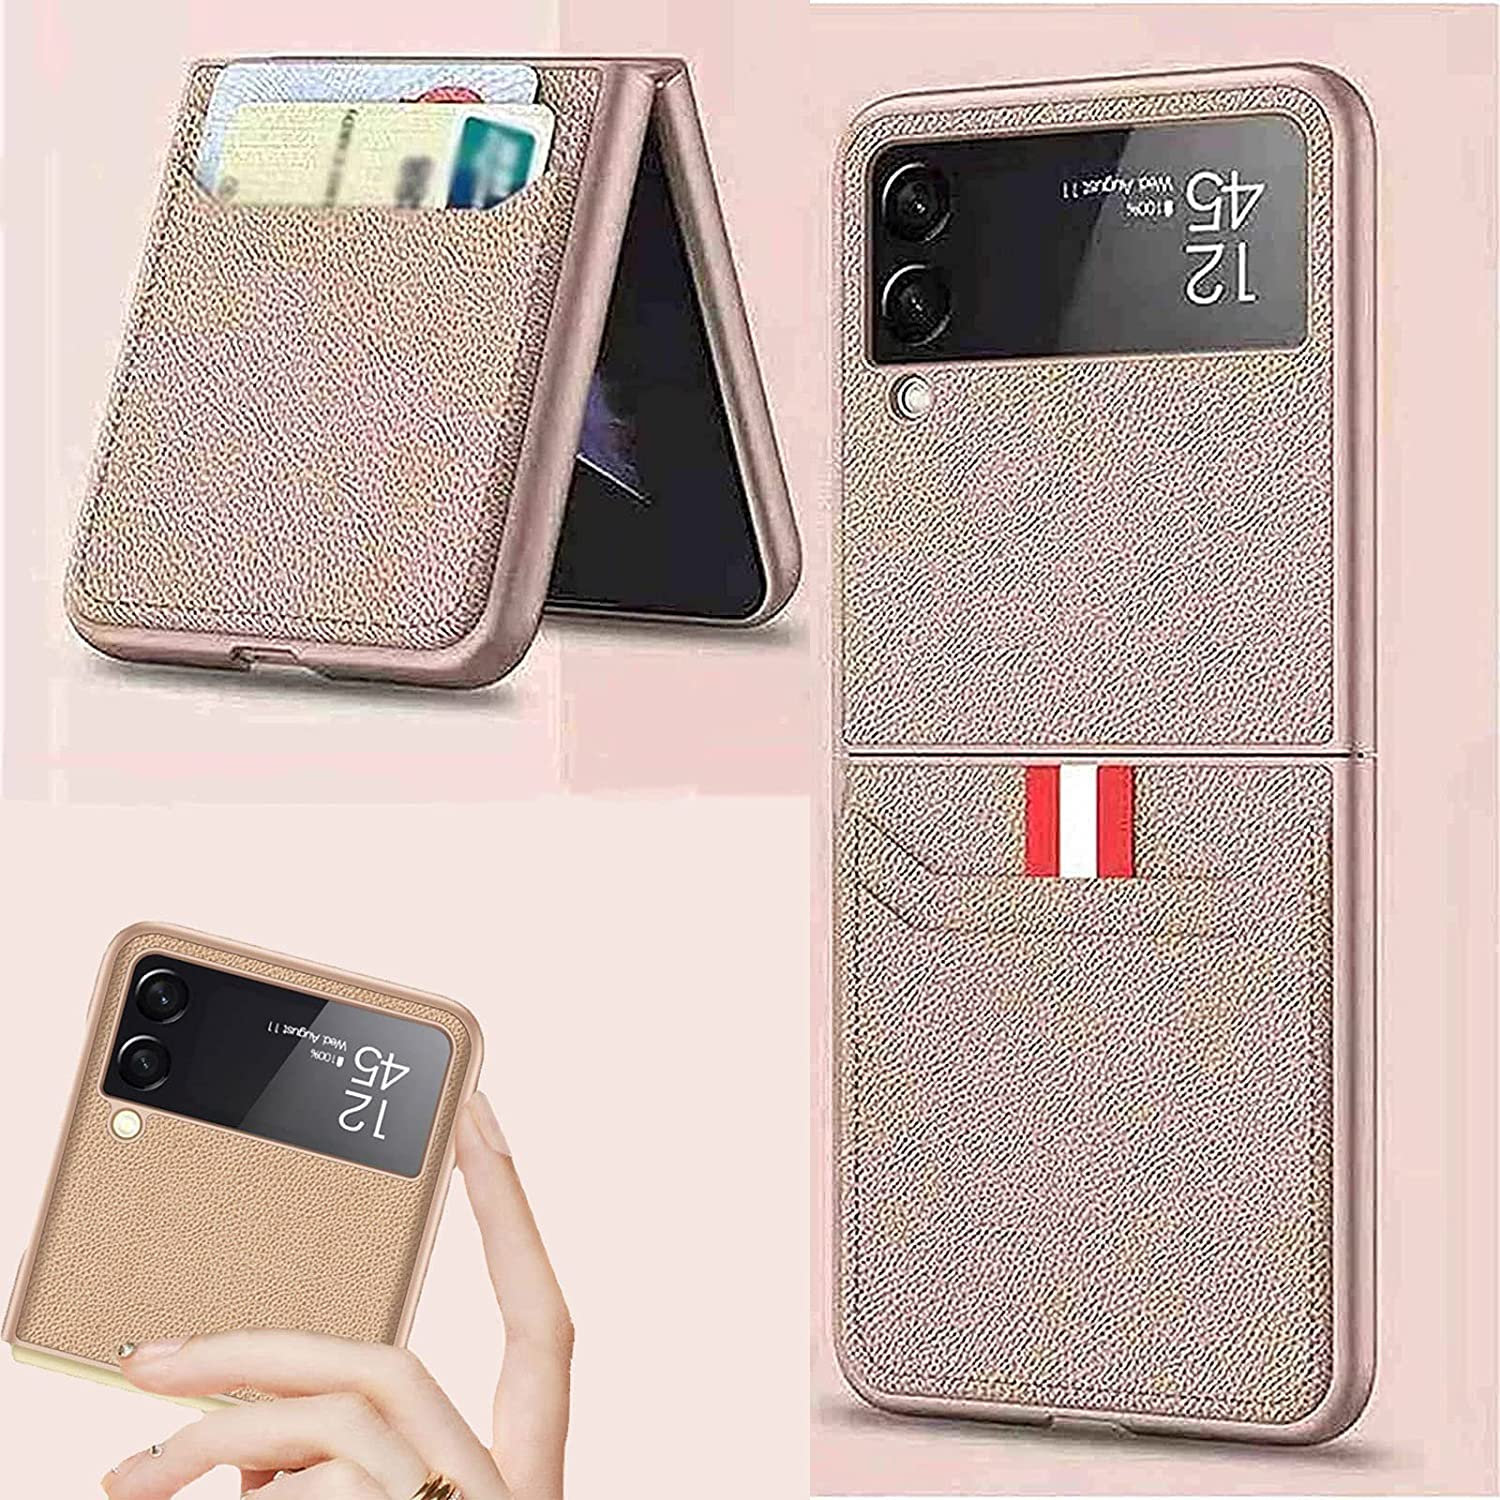 for Samsung Flip 3 Case, Leather Protective Cases with Wallet Card Holder, for Samsung Galaxy Z Flip 3 5g Card Holder Pu Leather Phone Folding Case Cover, Shockproof (Gold)